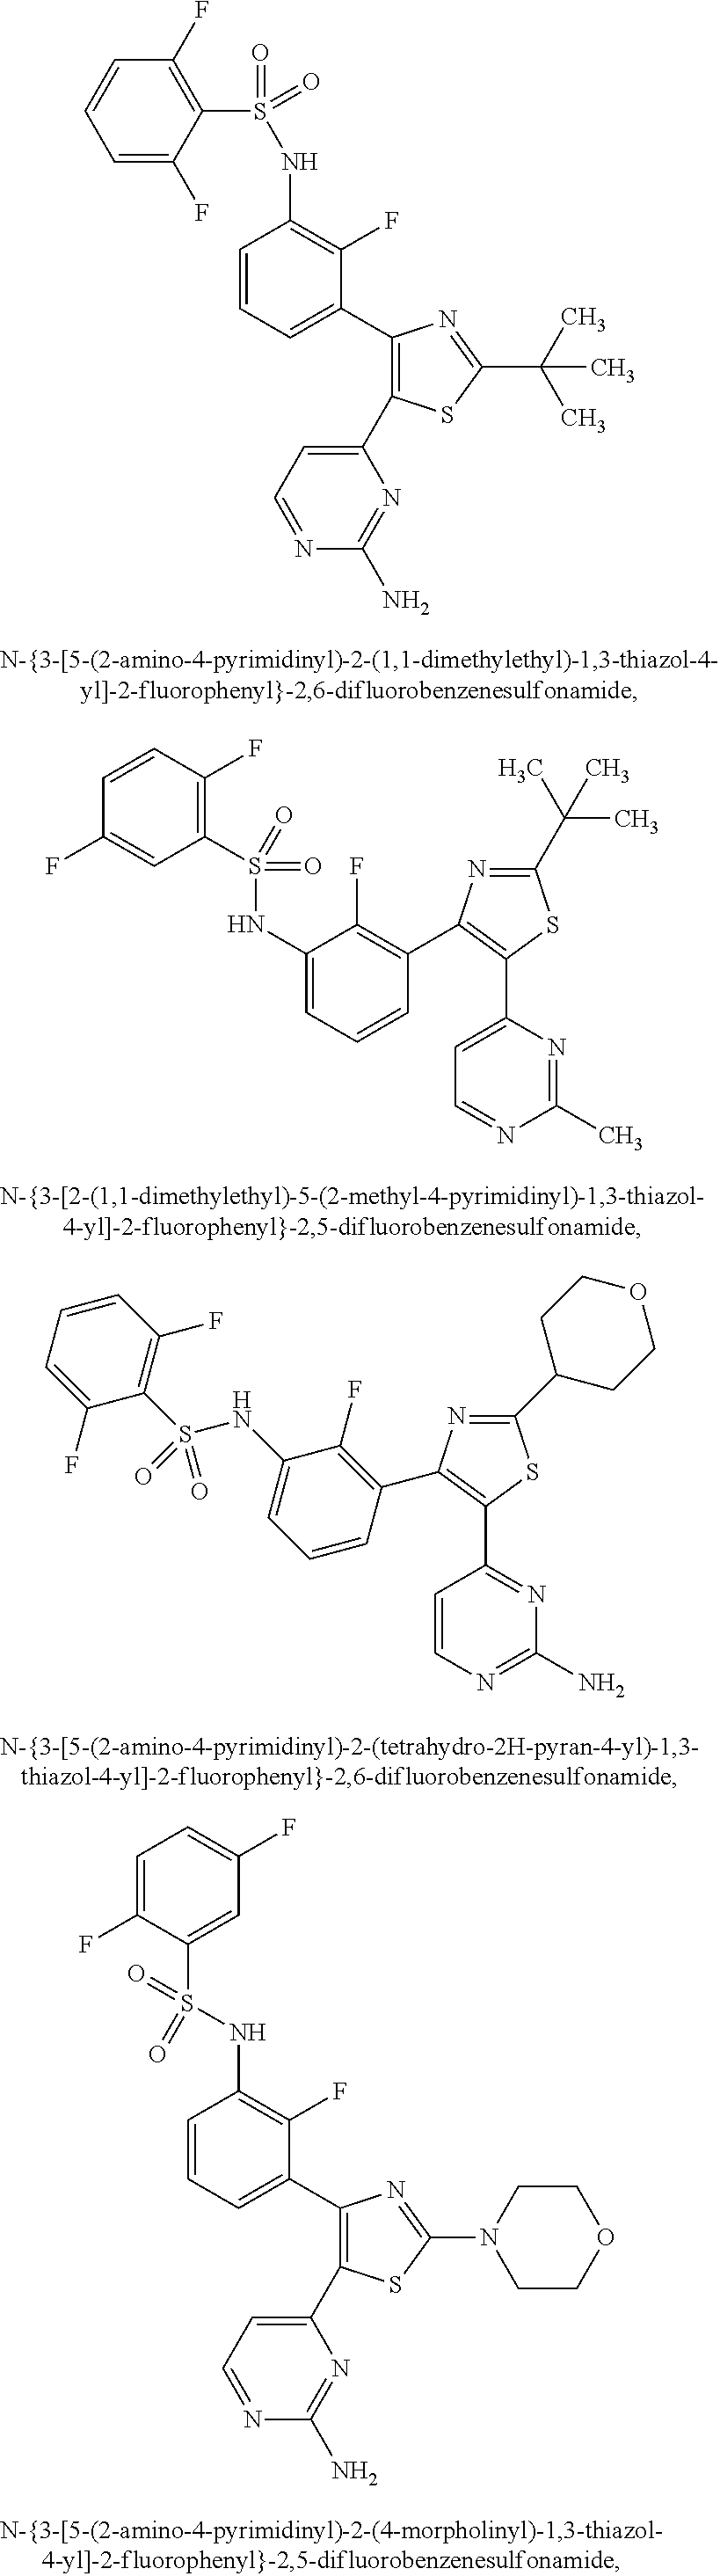 Us9233956b2 Benzene Sulfonamide Thiazole And Oxazole Compounds Bolens G174 Wiring Diagram Figure Us09233956 20160112 C00009